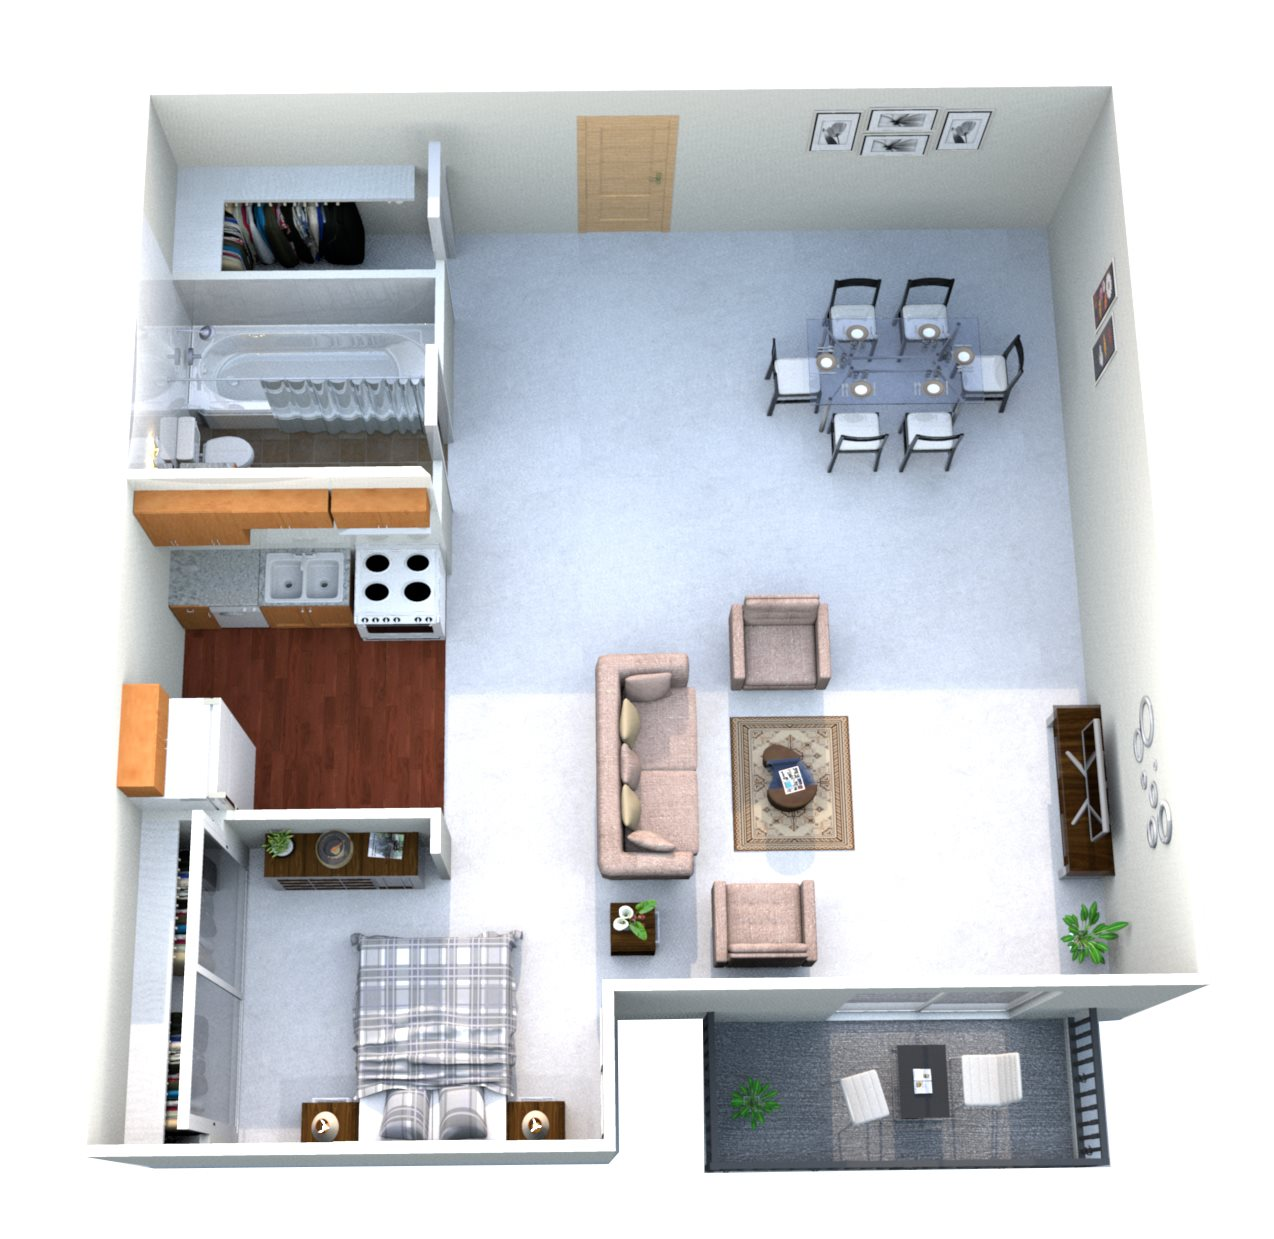 Floor Plans Of Oakmont Apartments In Coon Rapids, MN